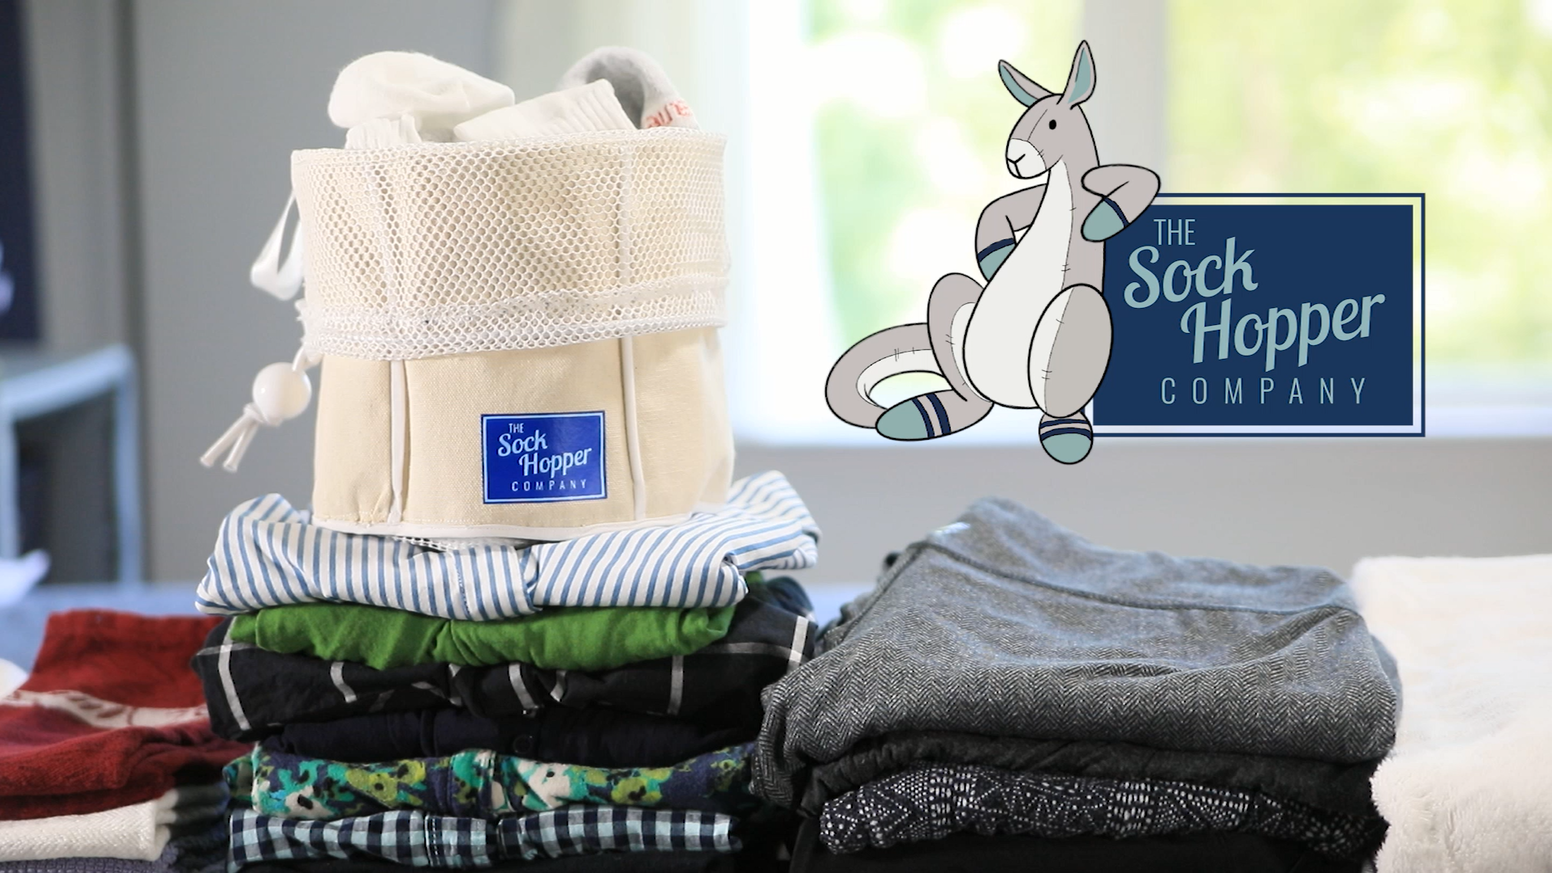 Never lose another sock! The Sock Hopper is an effortless, elegant, and high quality way to manage your socks when being washed.